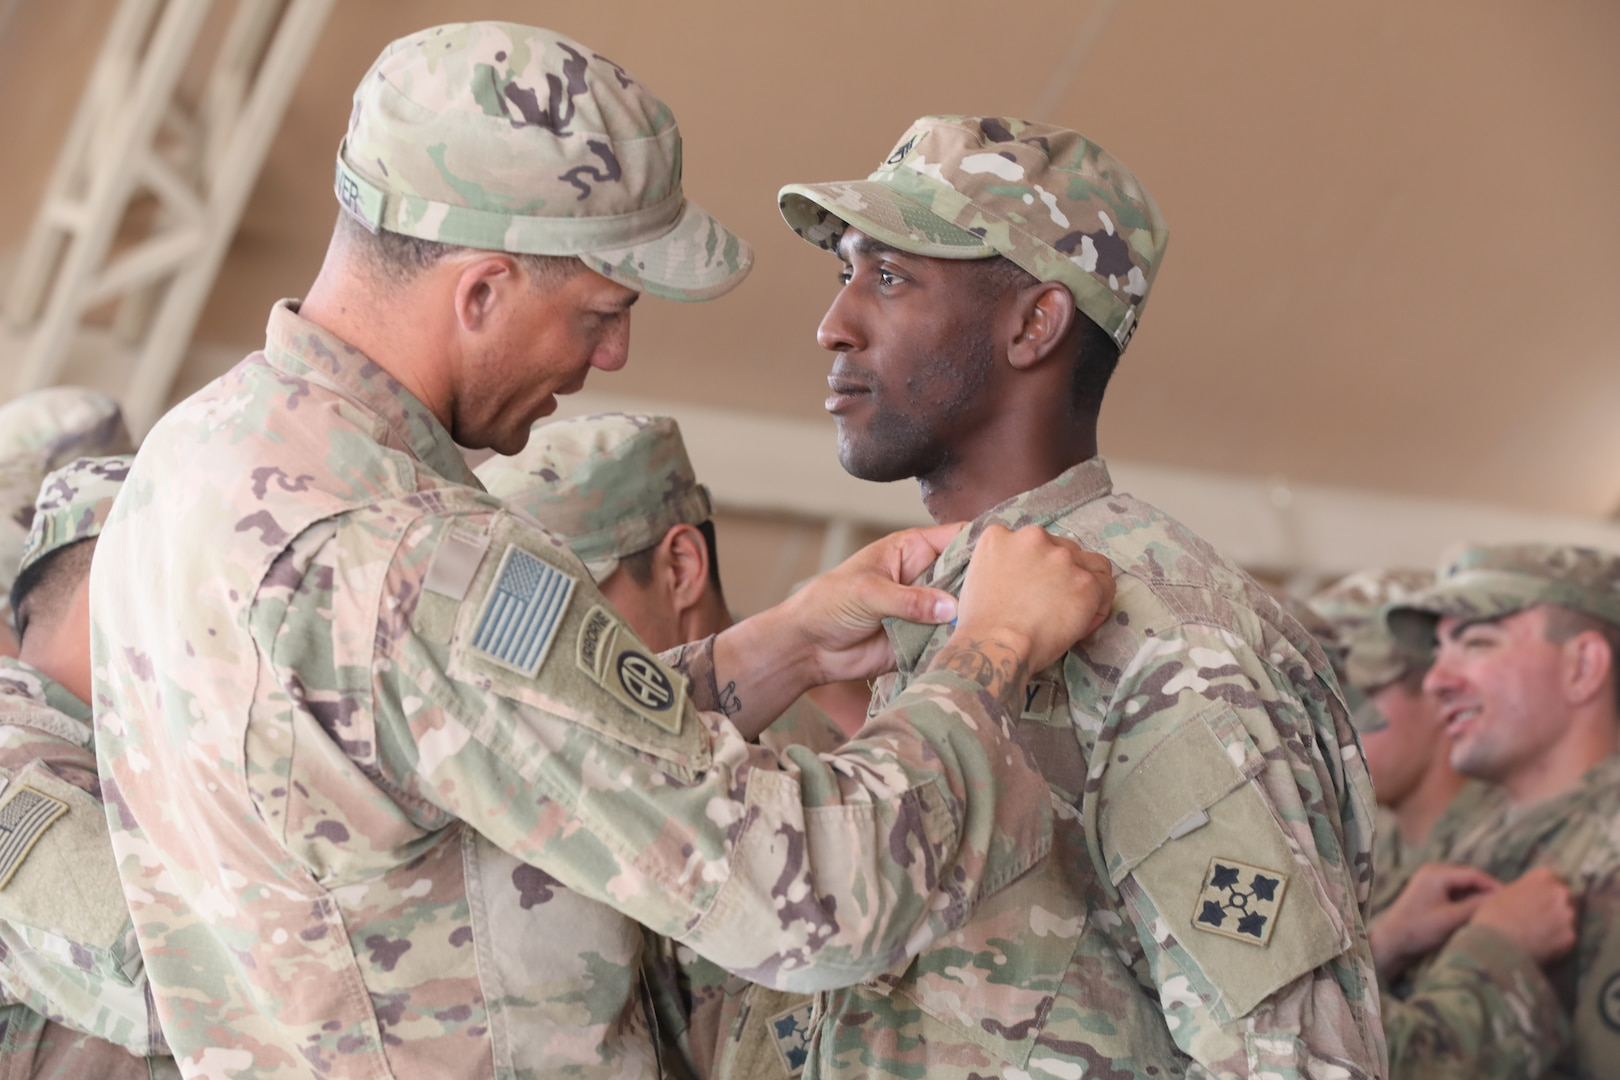 Staff Sgt. Stephen Frazier, an infantryman in 1st Battalion, 66th Armor Regiment, 3rd Armored Brigade Combat Team, 4th Infantry Division, is pinned with an Expert Infantryman Badge during a ceremony at Camp Buehring, Kuwait on Saturday, June 1, 2019. Frazier and 60 other infantry Soldiers deployed throughout the U.S. Army Central area of operations earned their EIB after completing a week of thorough testing with 3rd ABCT at Camp Buehring.